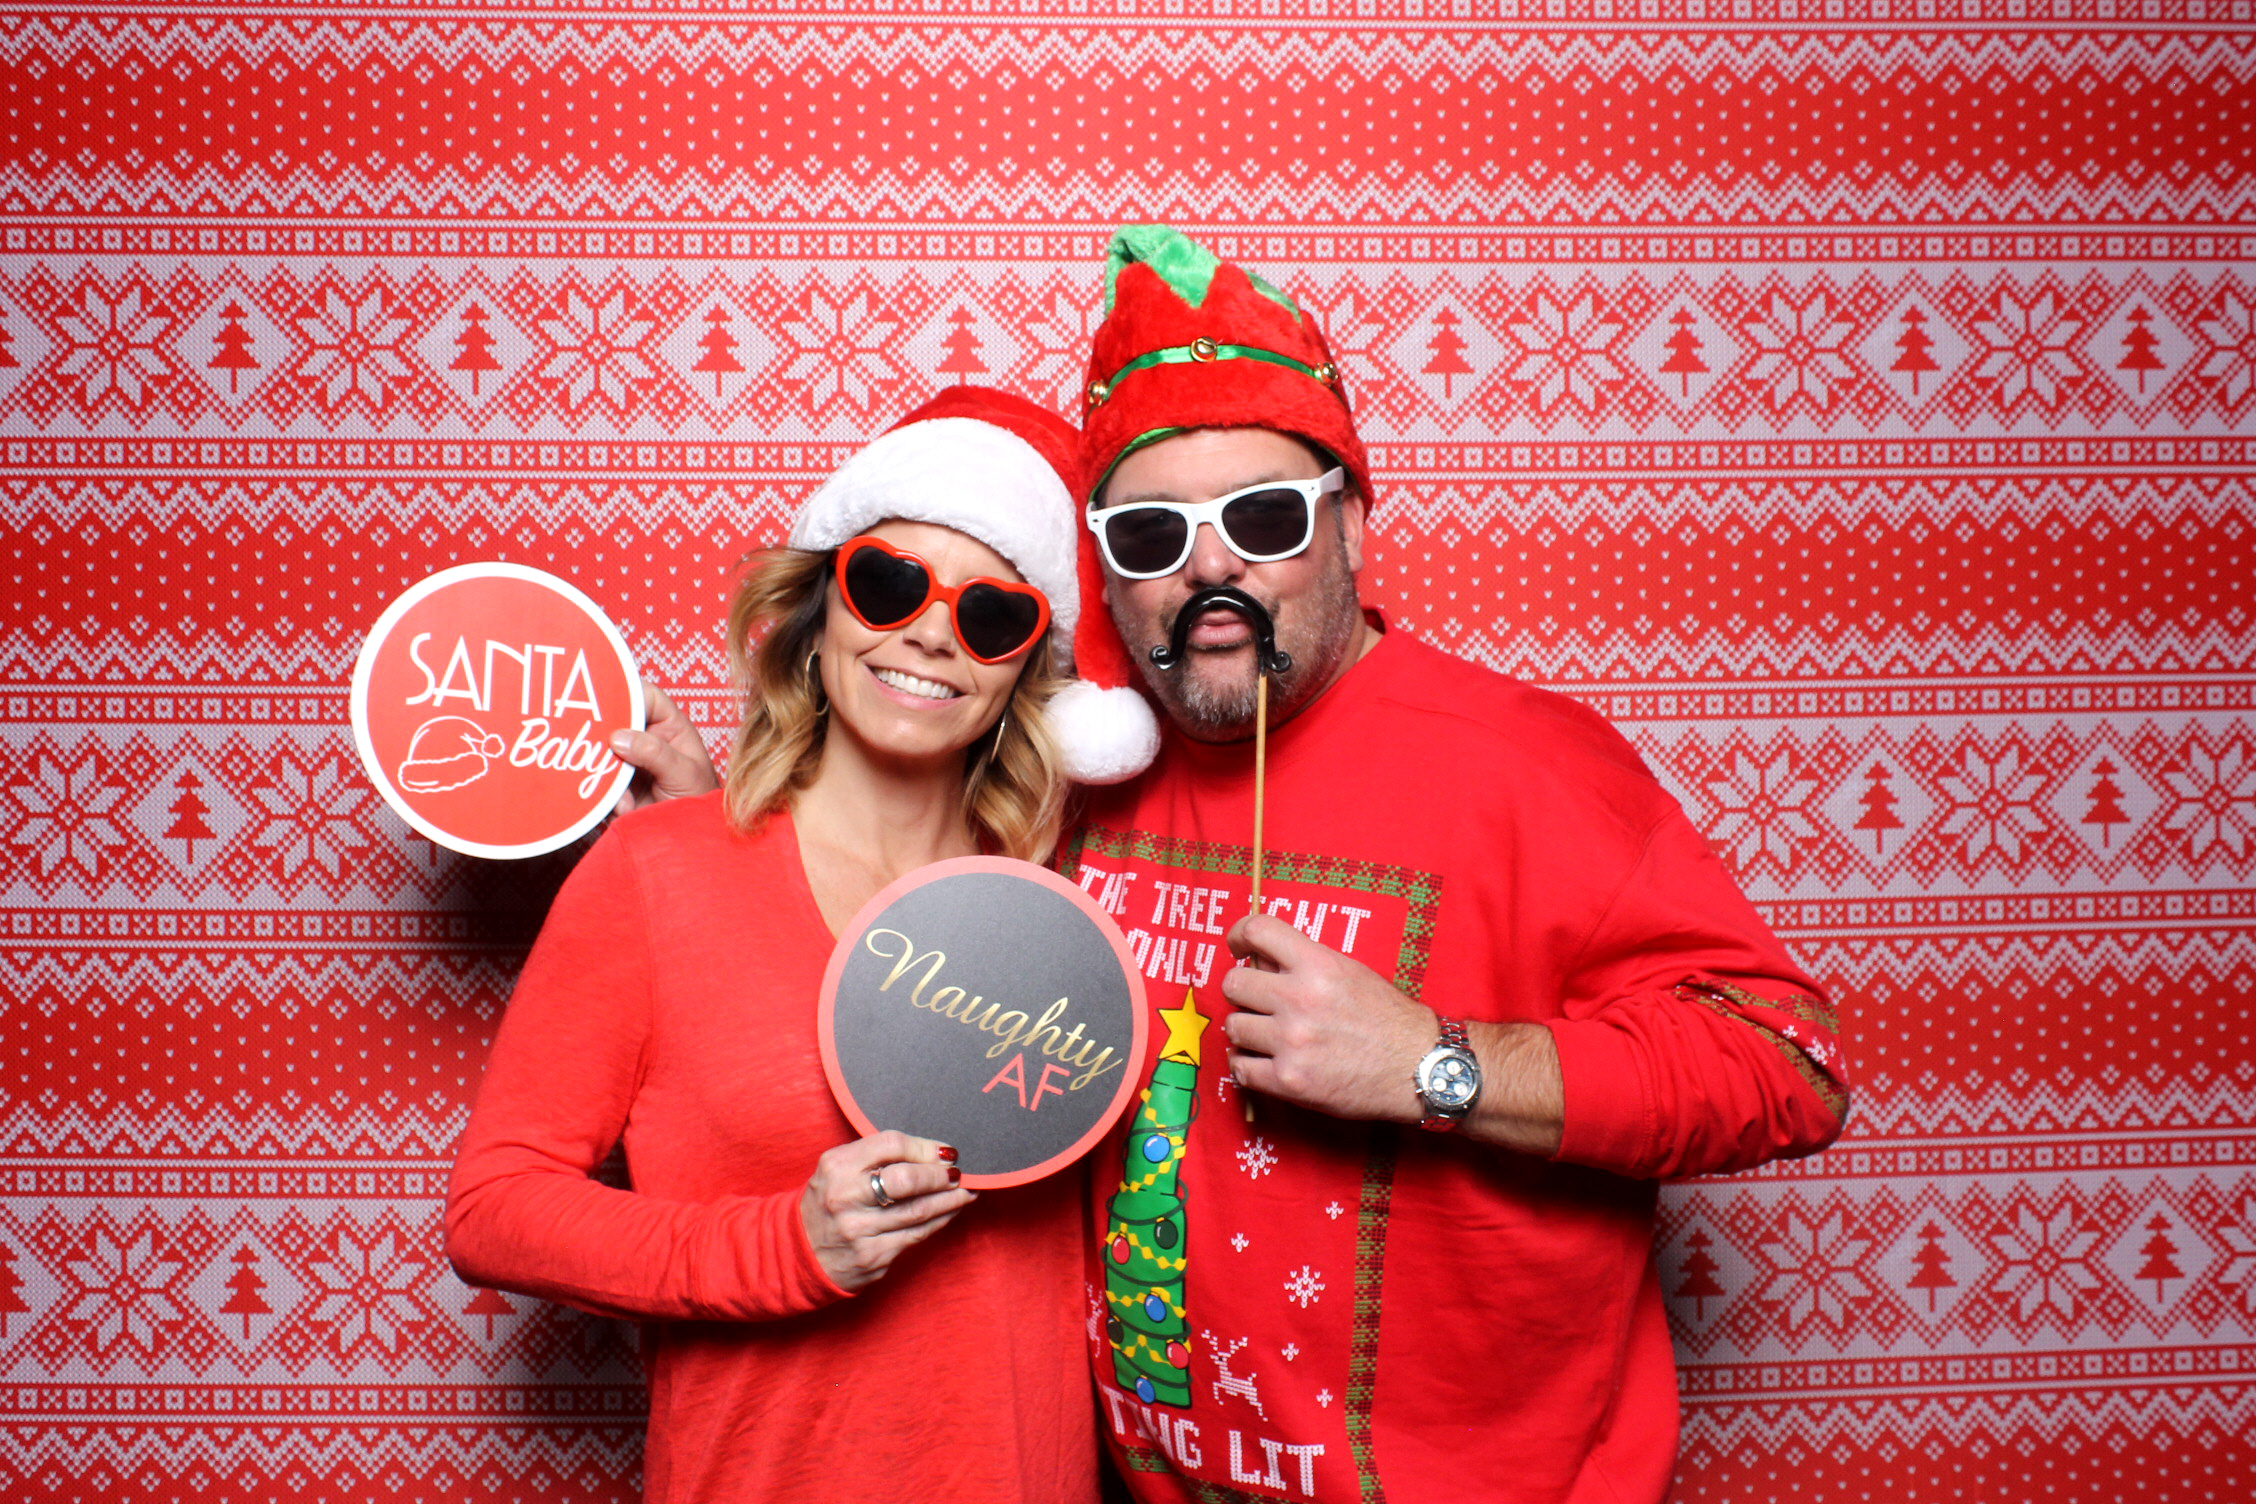 Christmas Photo Booth - Las Vegas